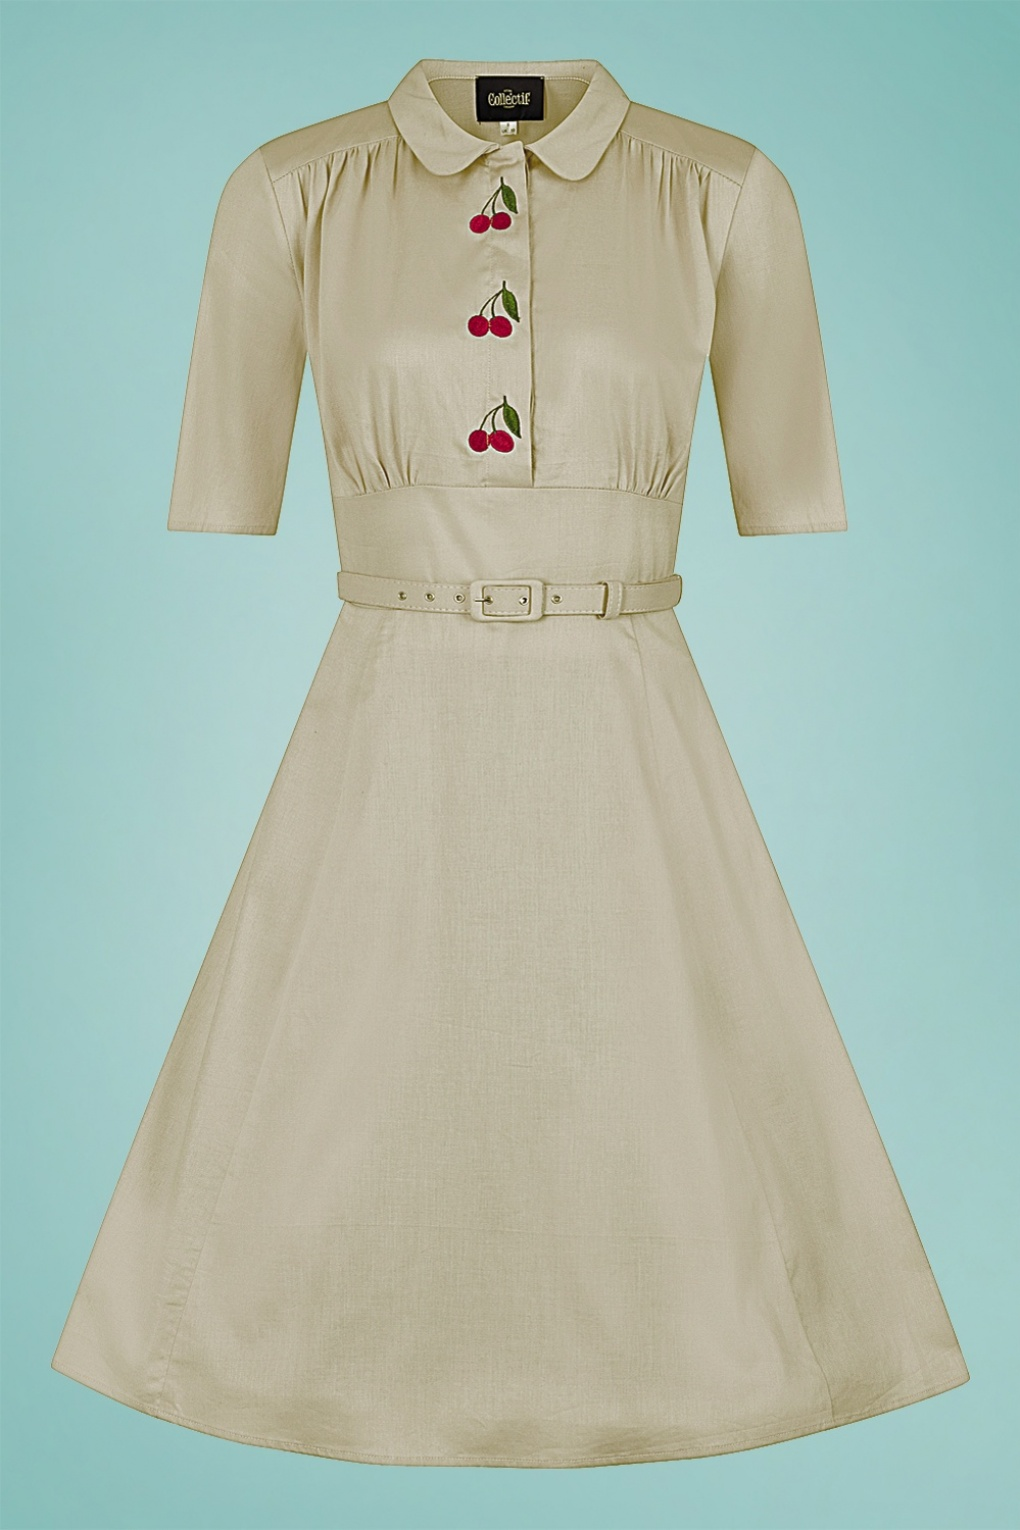 Swing Dance Clothing You Can Dance In 40s Doriane Cherry Swing Dress in Beige £55.72 AT vintagedancer.com